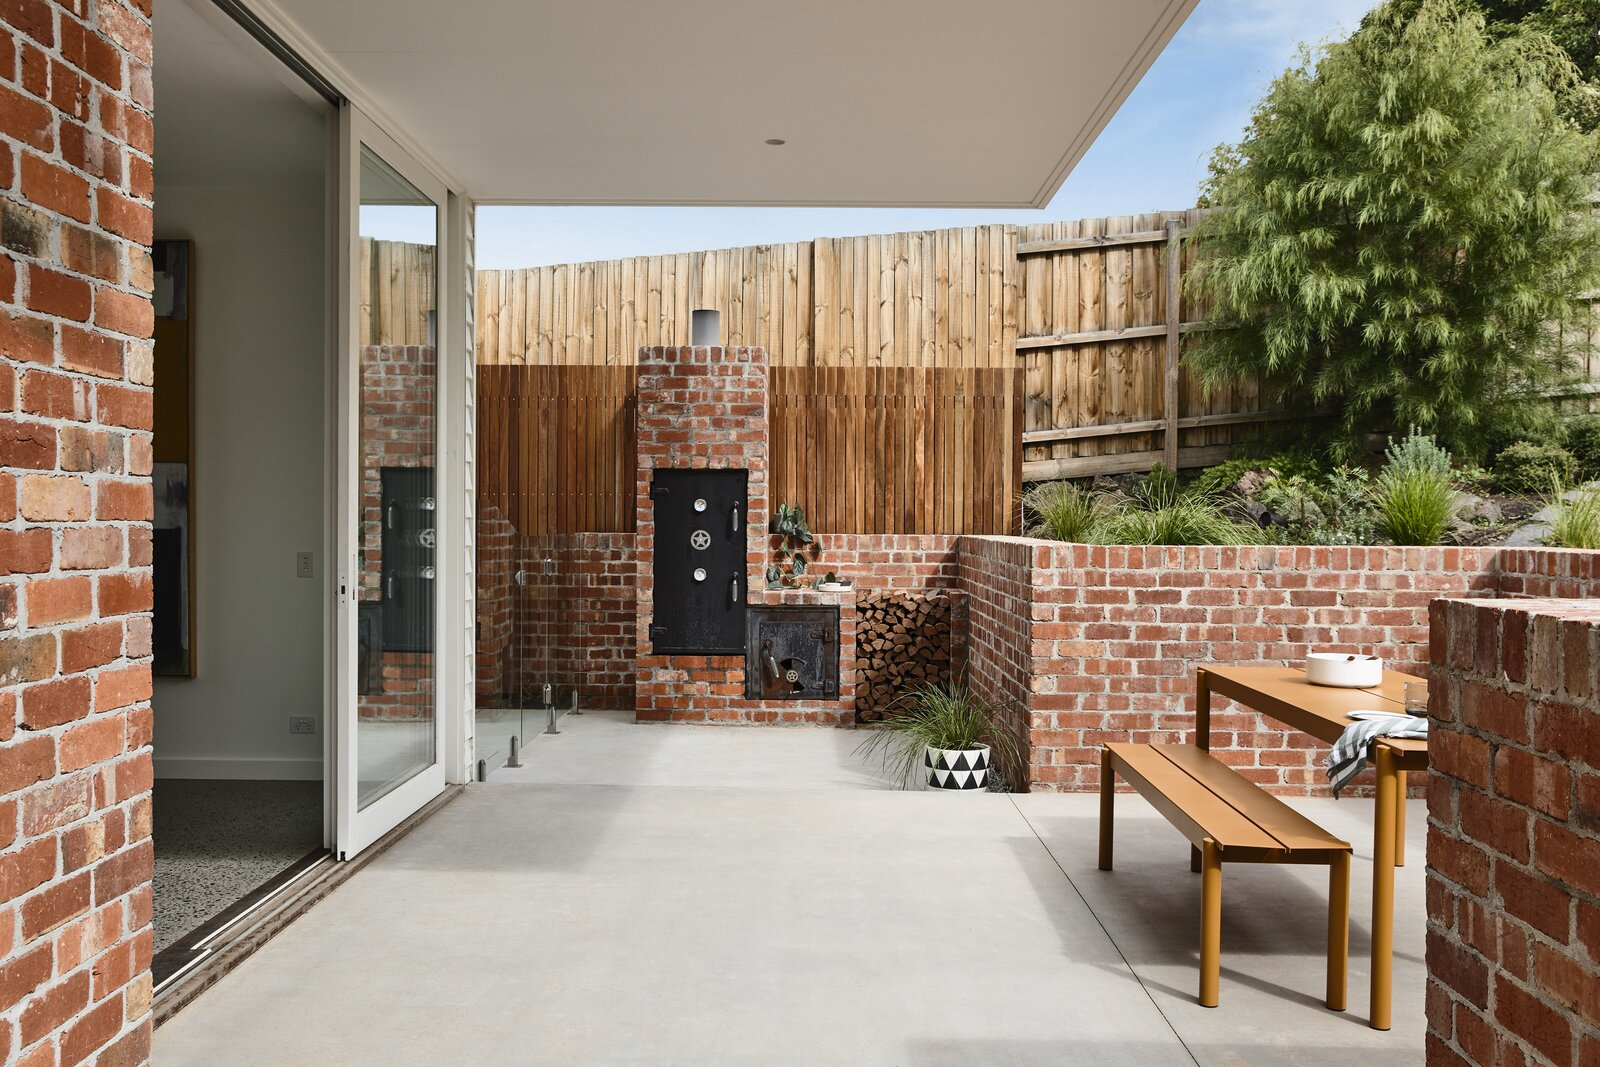 Photo 20 of 25 in This Melbourne Home Sits Pretty on a Slightly Sloped Site